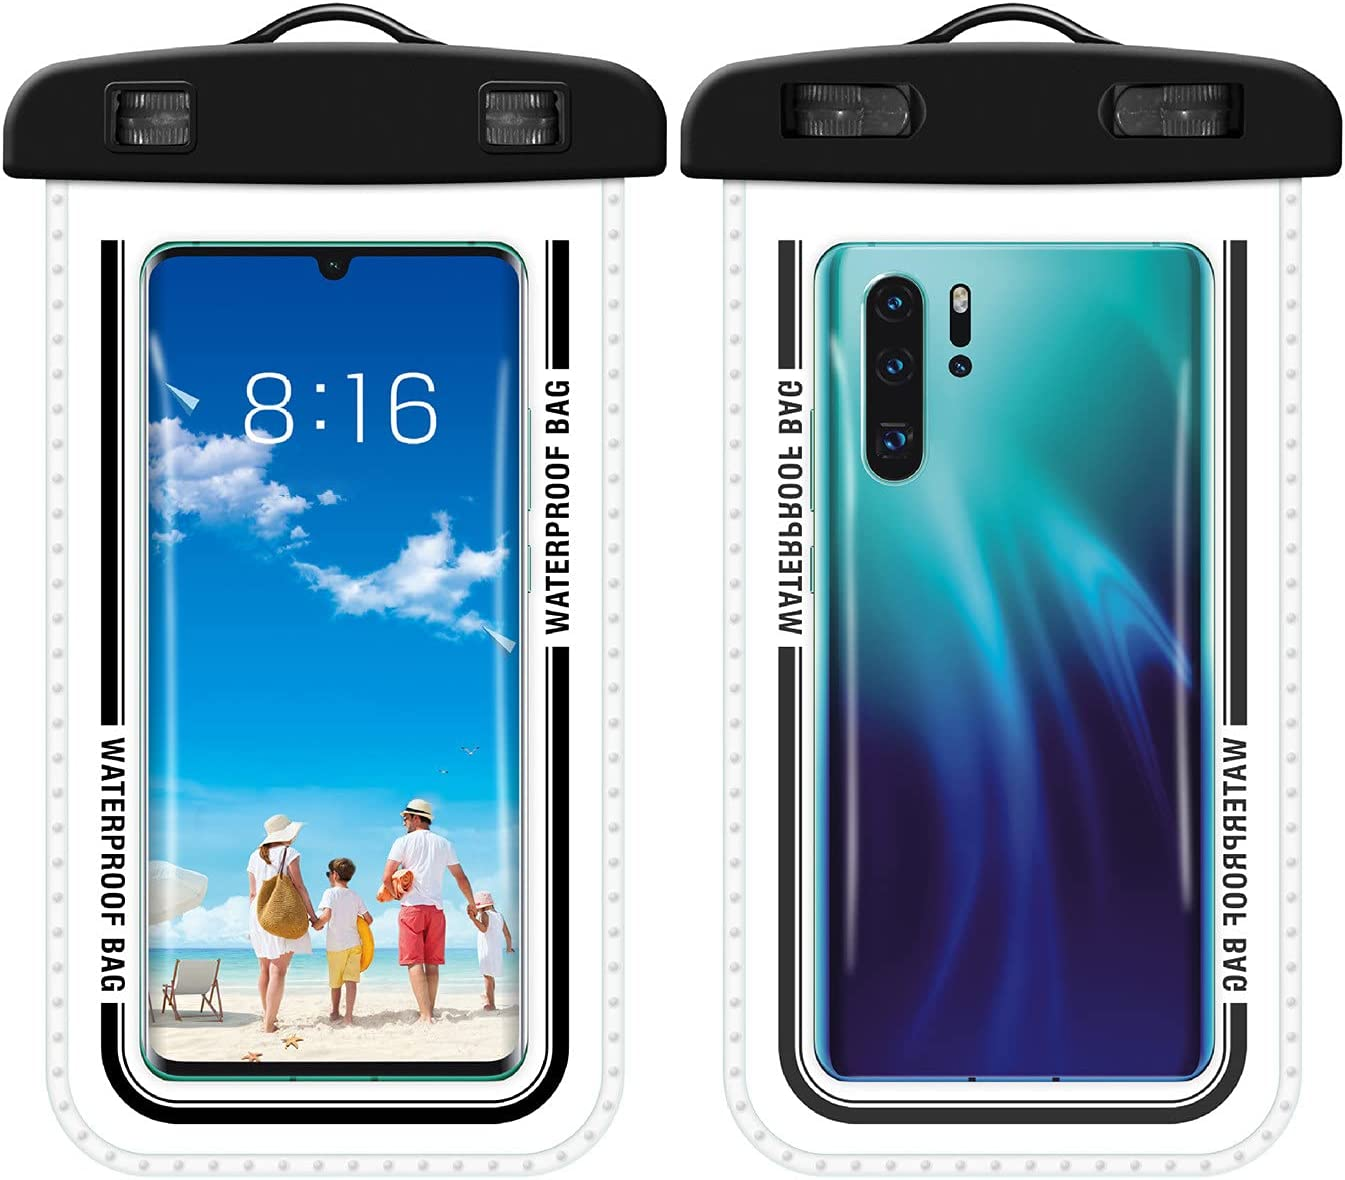 Exte Haning Neck Mobile Phone Waterproof Bag Diving Case Transparent Swimming Pool Smartphone Sealed Pouch